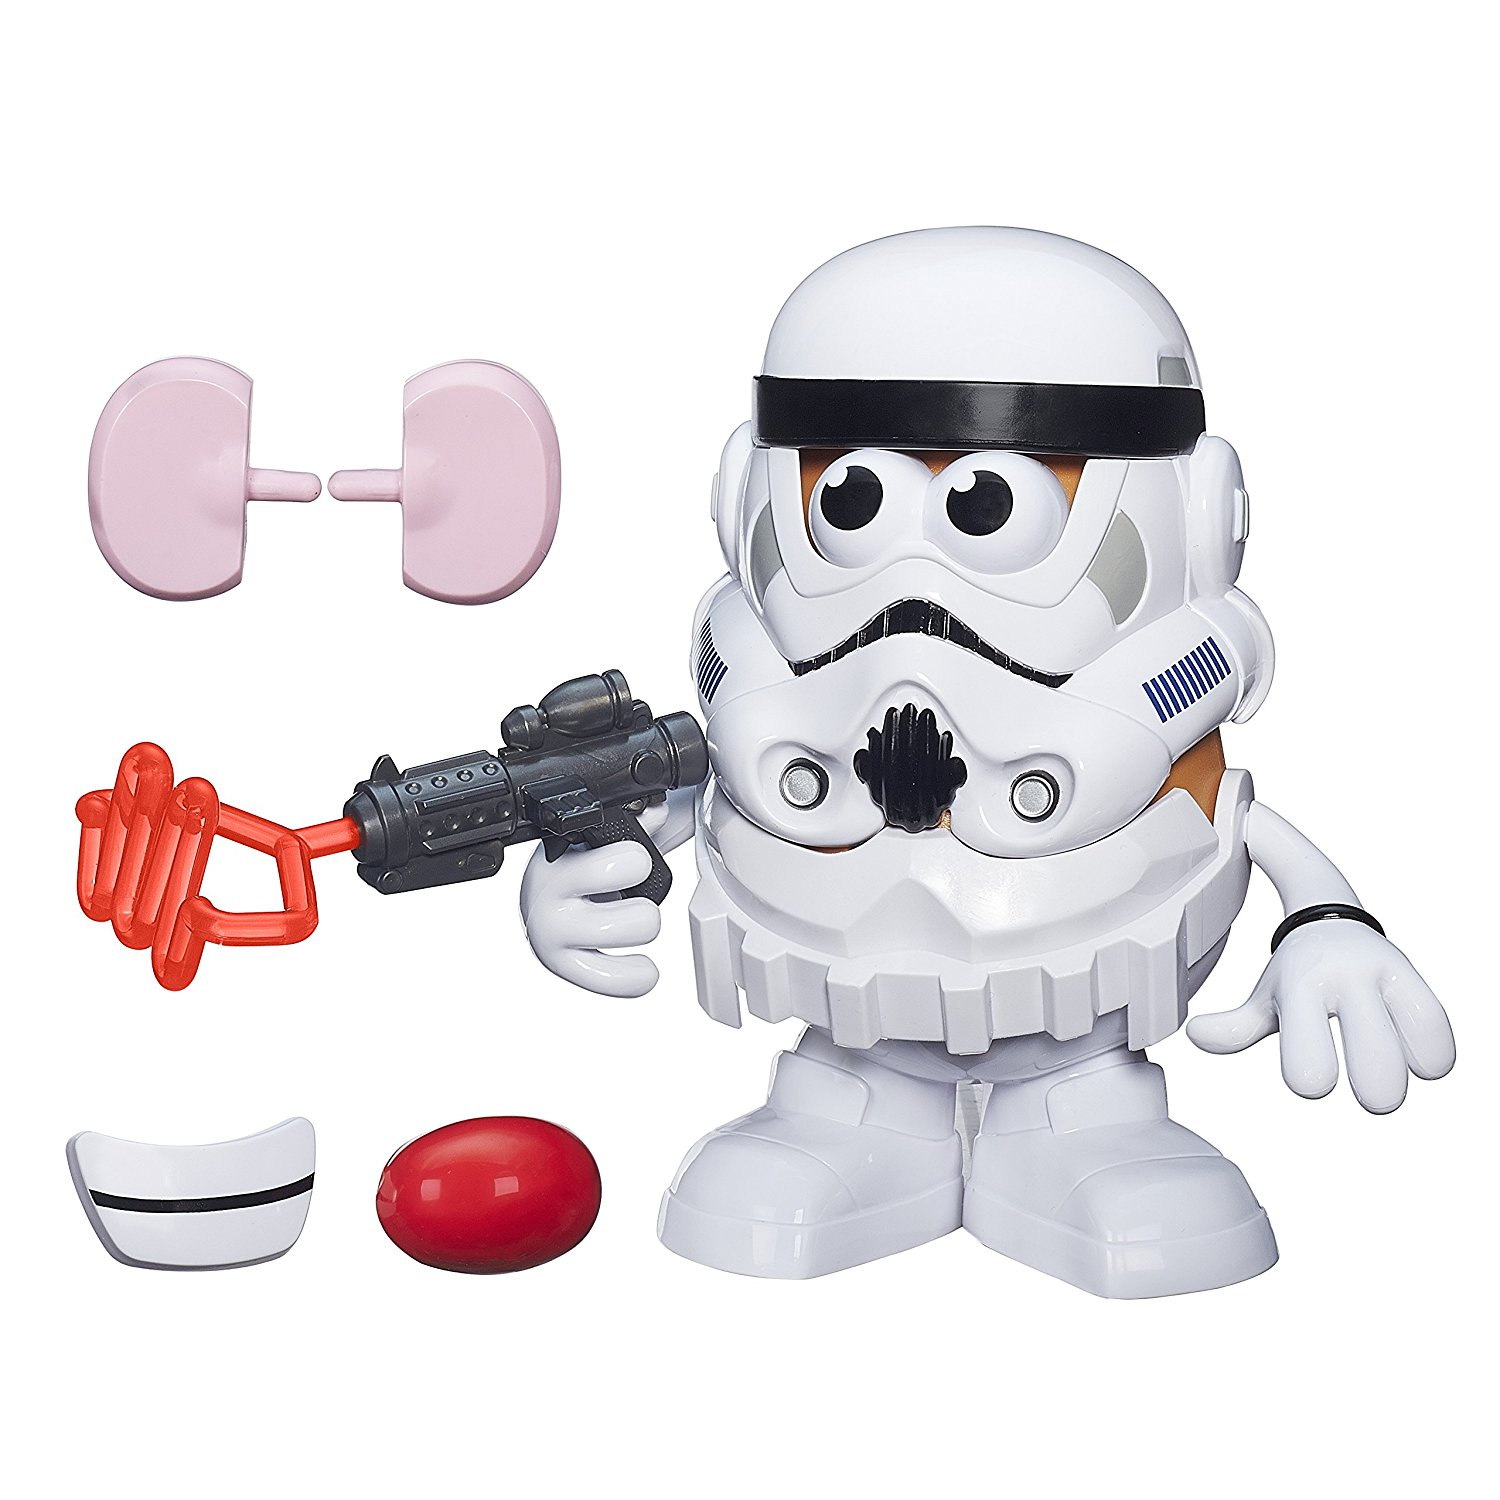 Playskool Mr. Potato Head Spudtrooper, Mr. Potato Head as a blaster-toting Stormtrooper By Mr Potato Head by